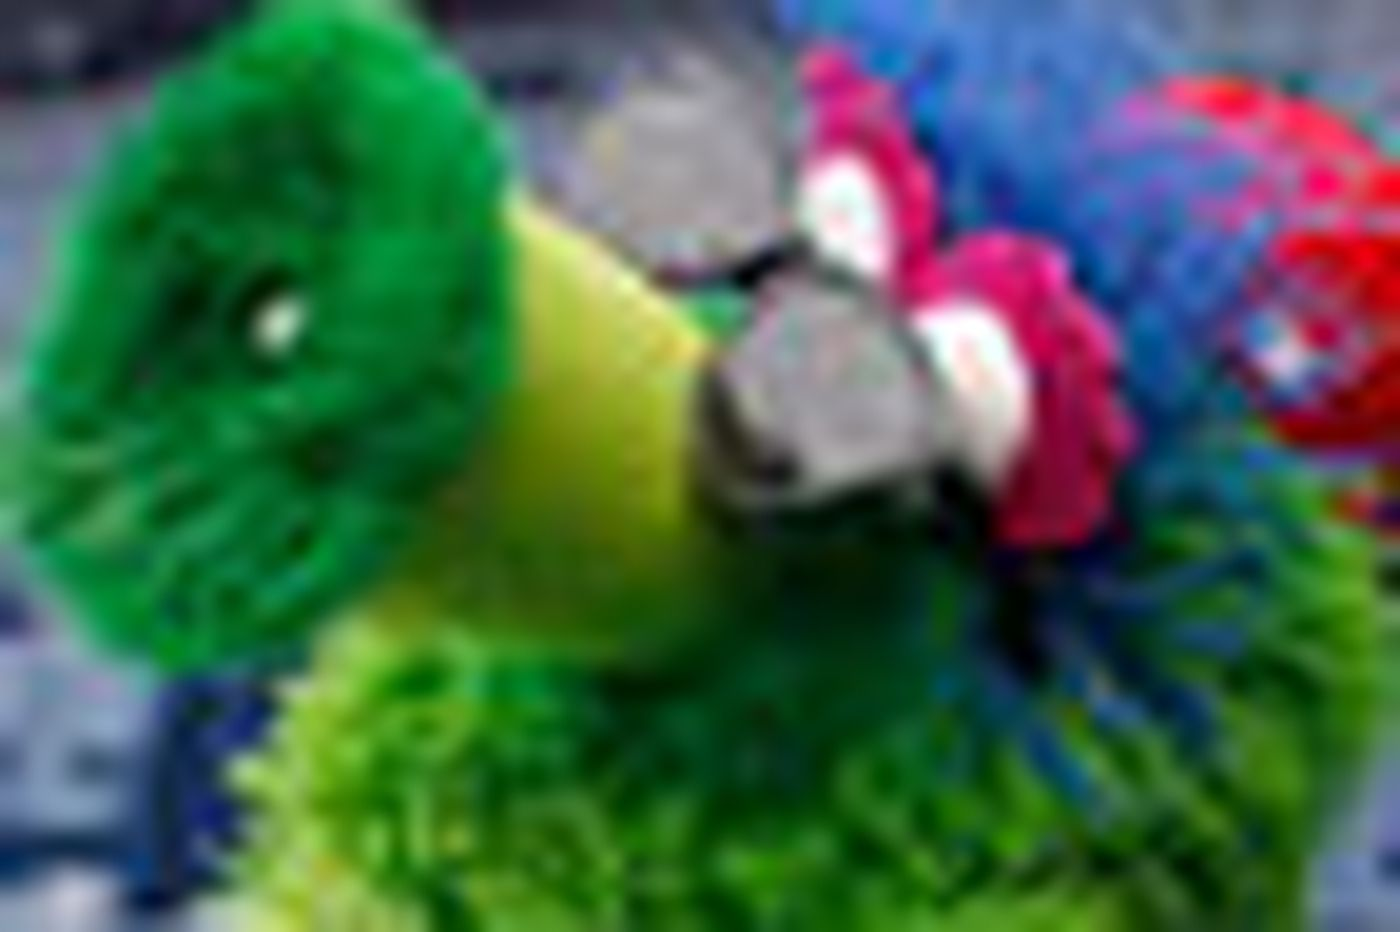 Billy's stunned at Phanatic's snub